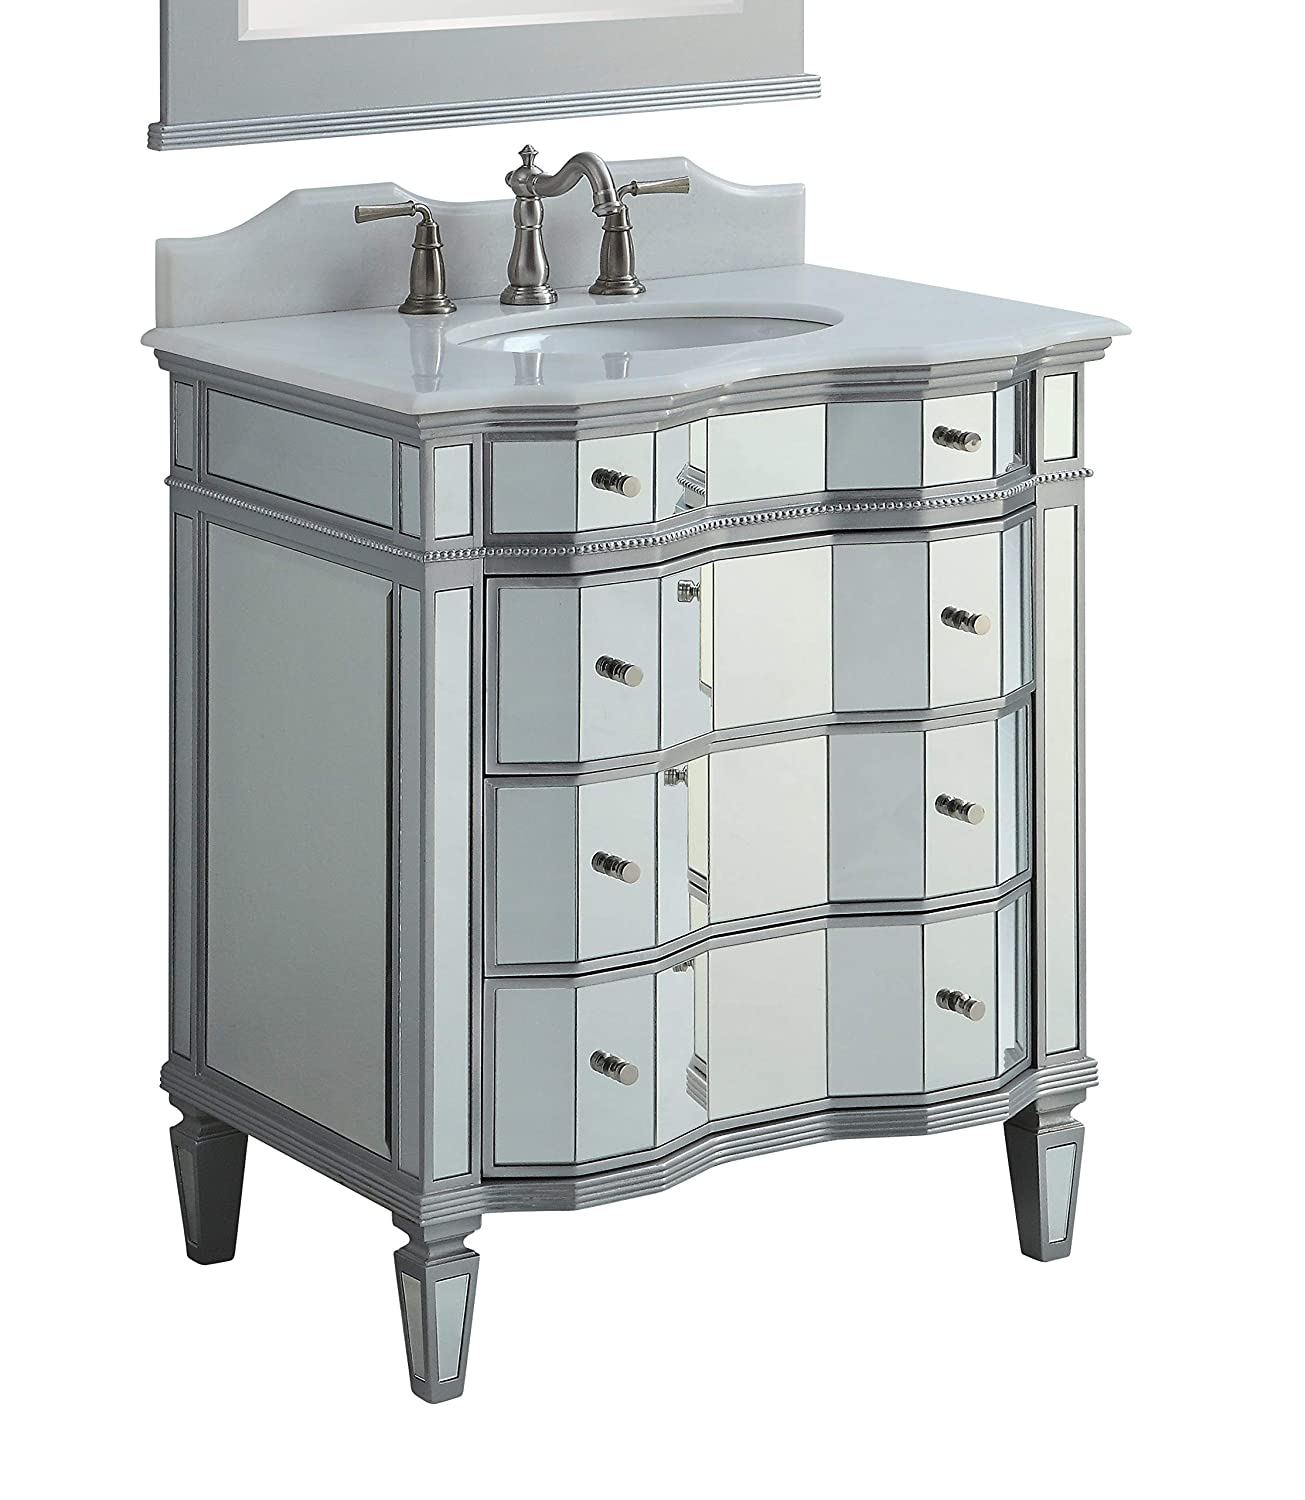 30 Mirrored w silver trim Bathroom Sink Vanity Cabinet – Ashley Model BWV-025 30